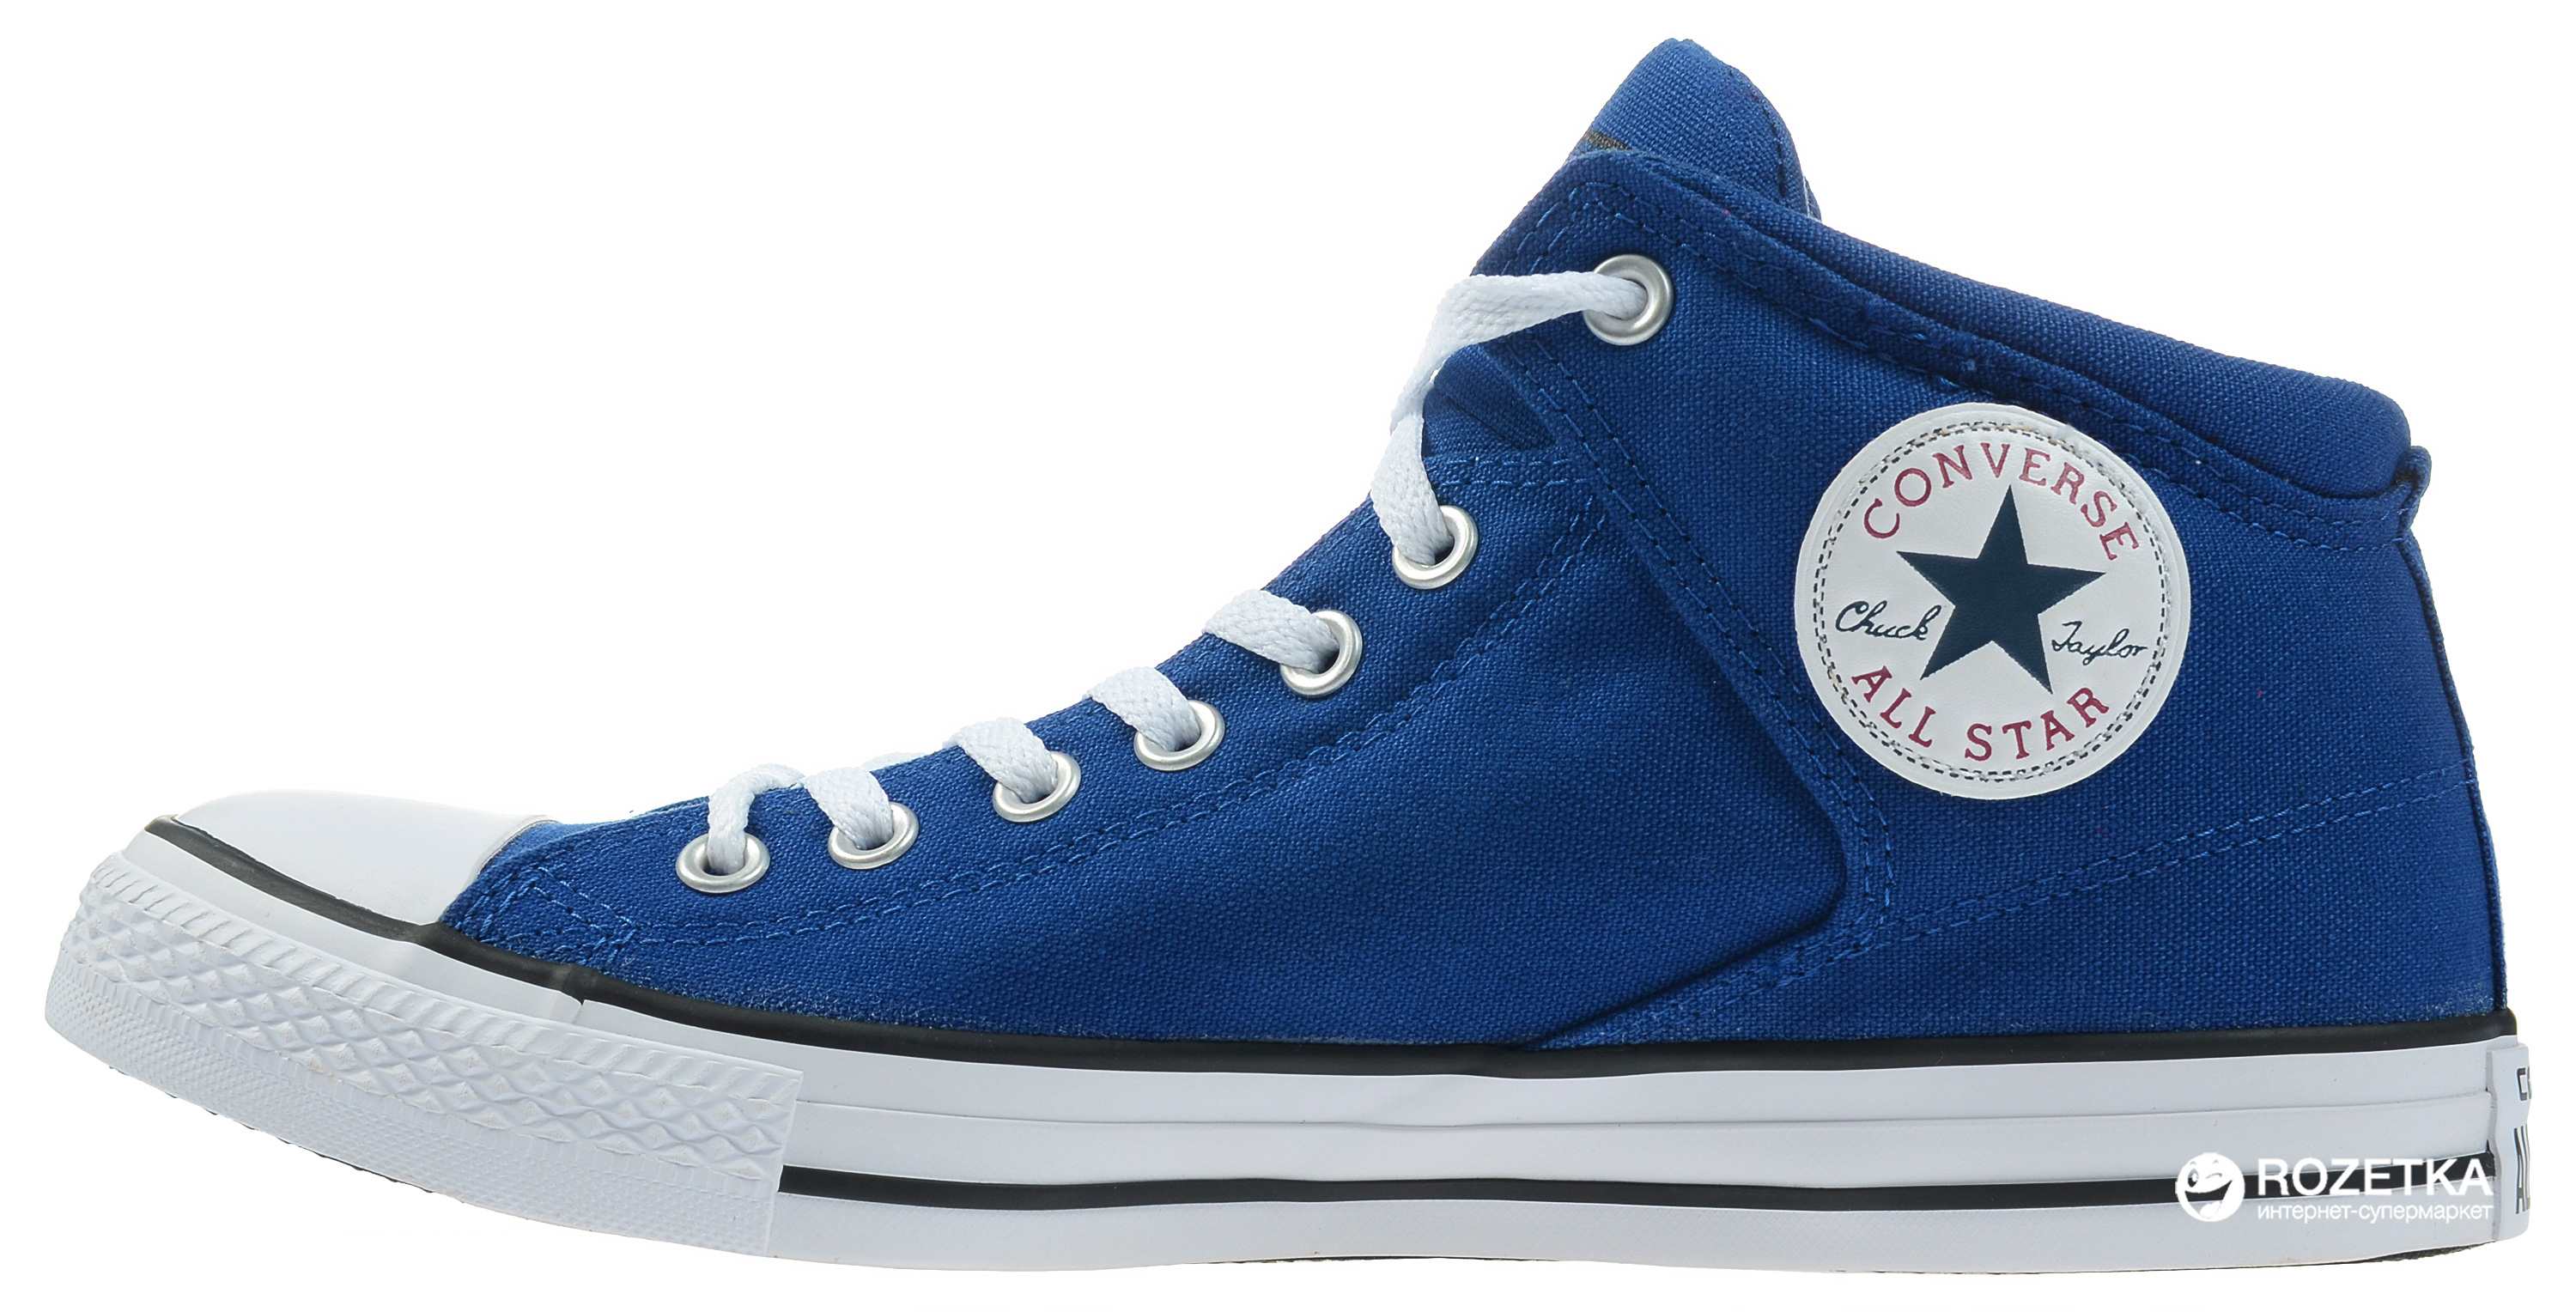 Кеды Converse Chuck Taylor All Star High Street 151042C 45 (11) 29.5 см cd46f0253919a